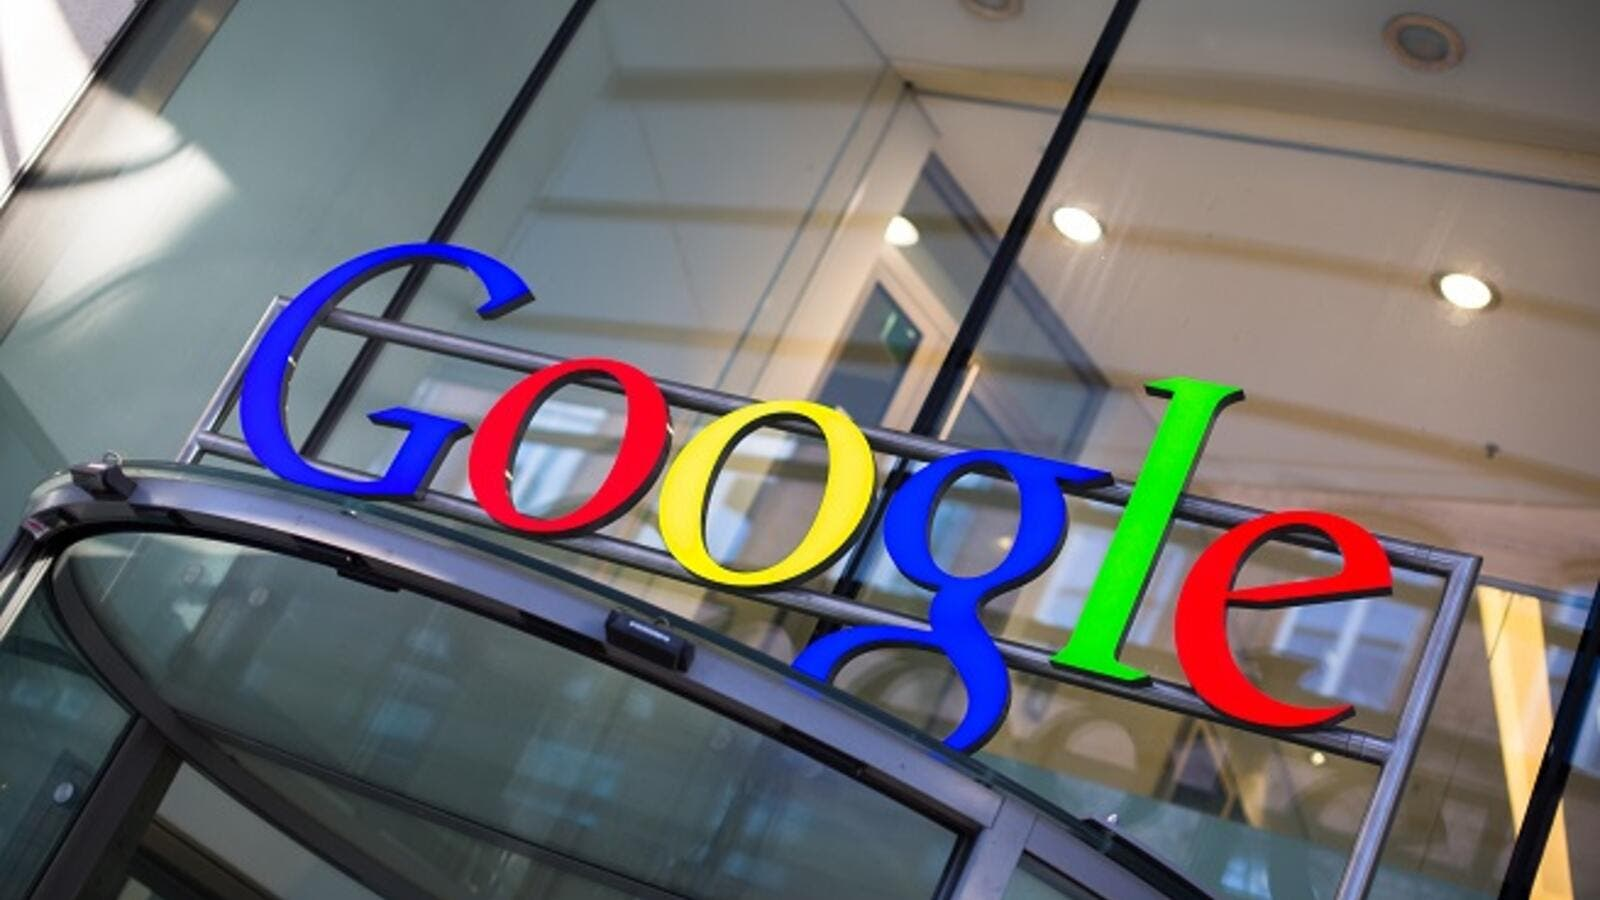 Google has reportedly stopped scanning user's emails, although apparently third-party apps still do. (Shuterstock)